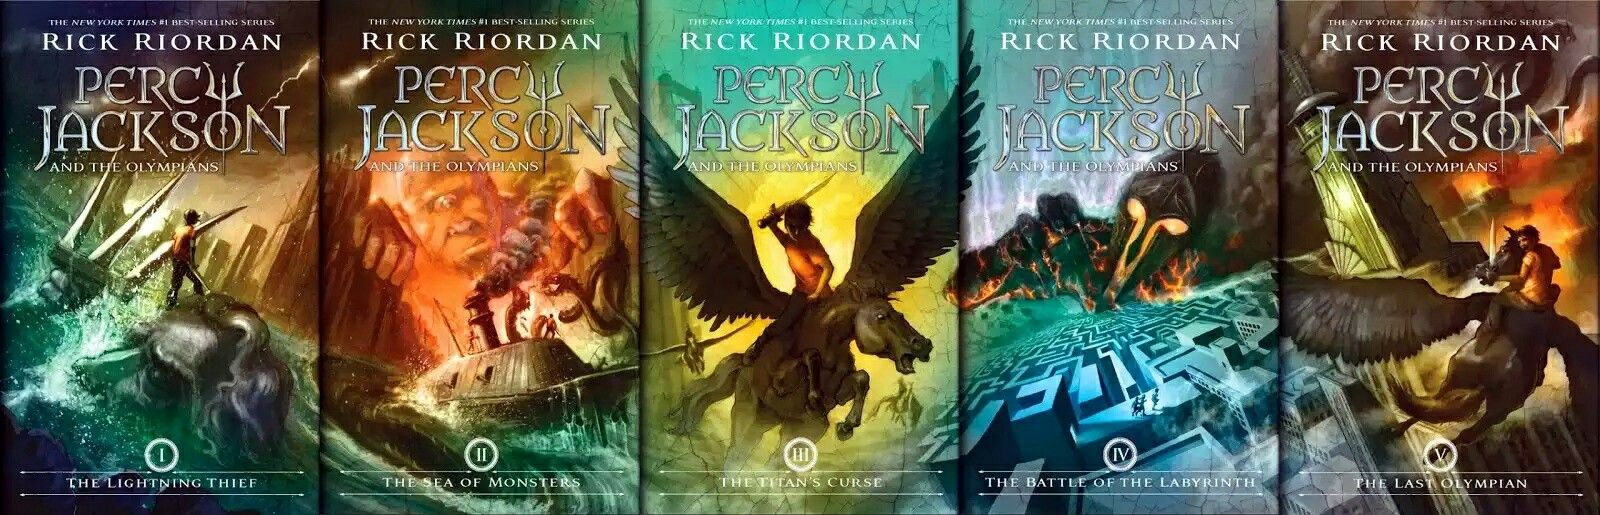 Percy Jackson Series New Book Covers Percy Jackson Percy Jackson Wallpaper Percy Jackson Books